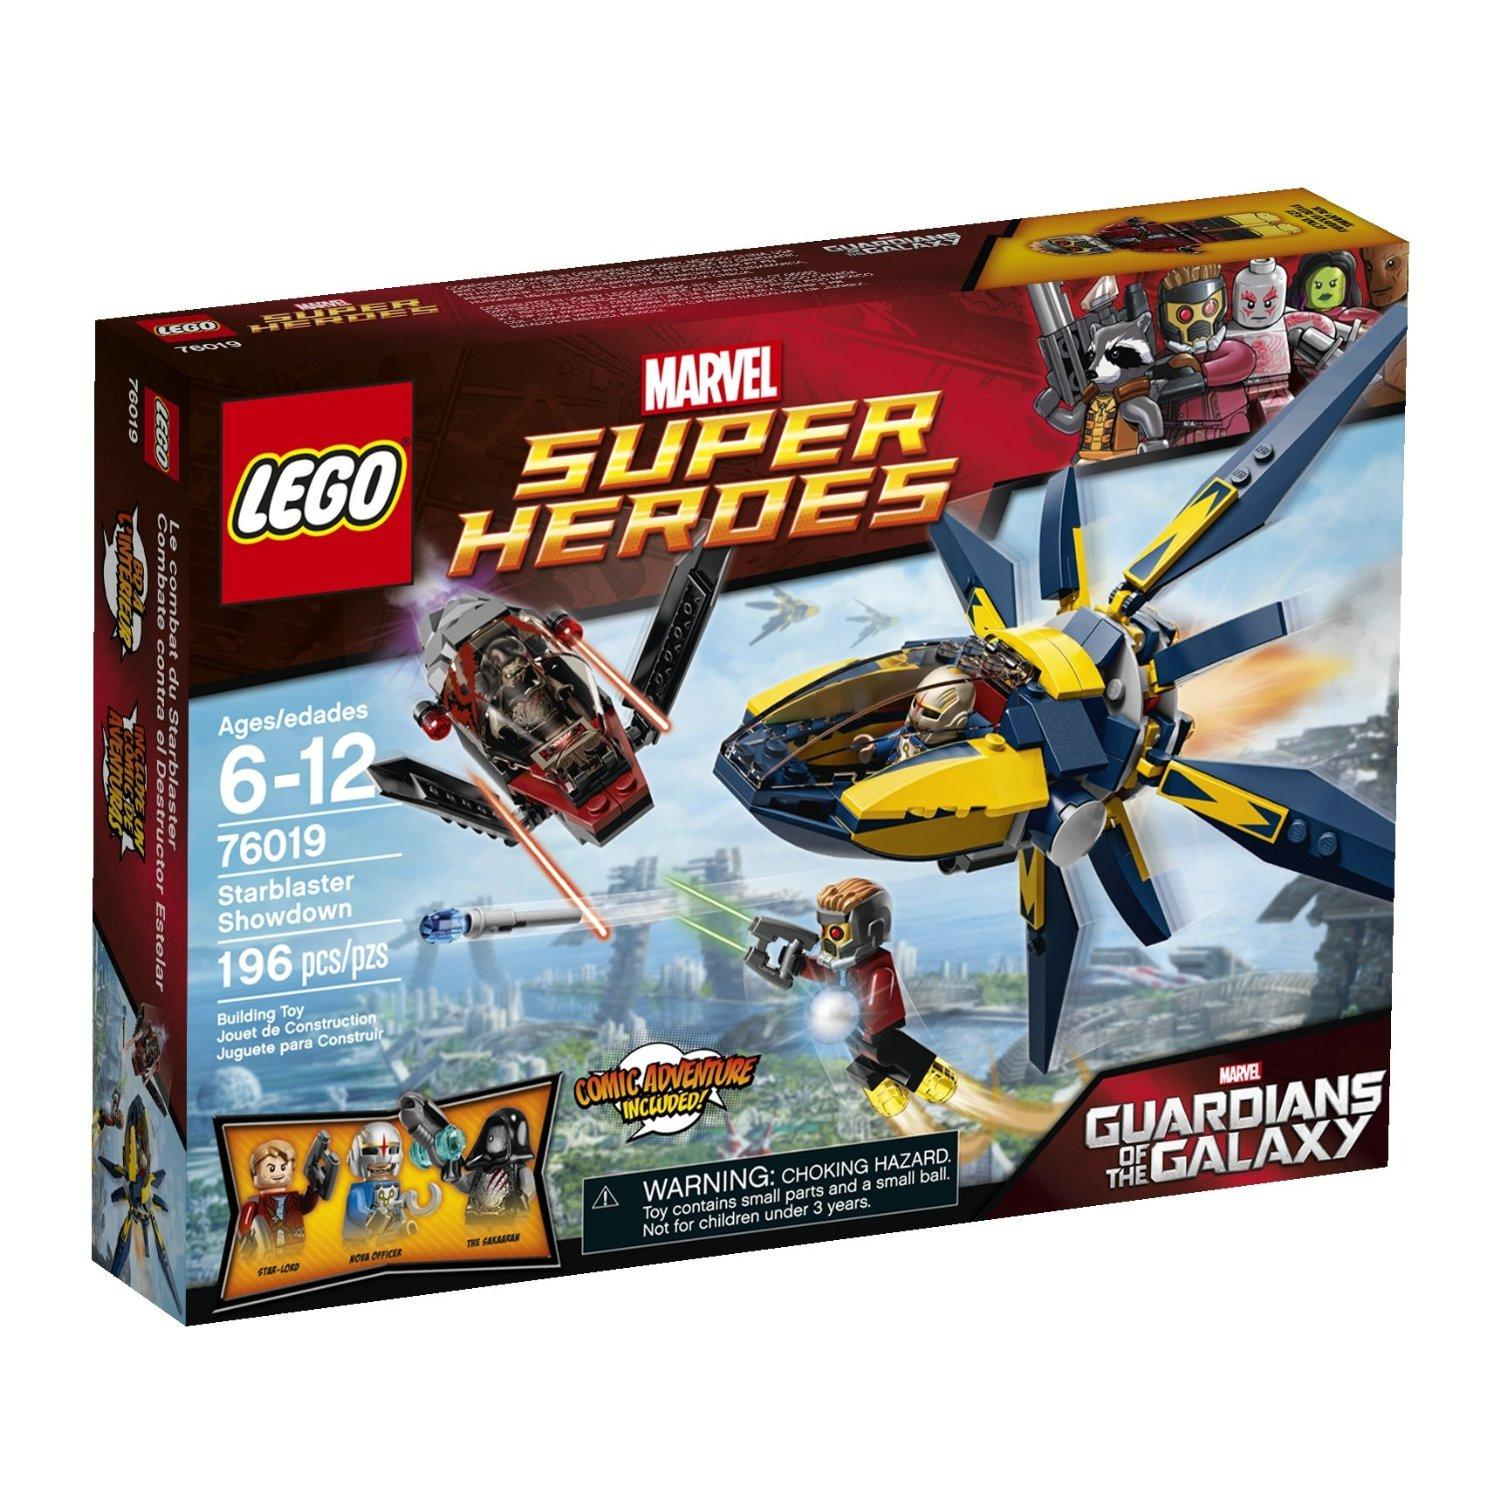 $12.59 LEGO Superheroes 76019 Starblaster Showdown Building Set